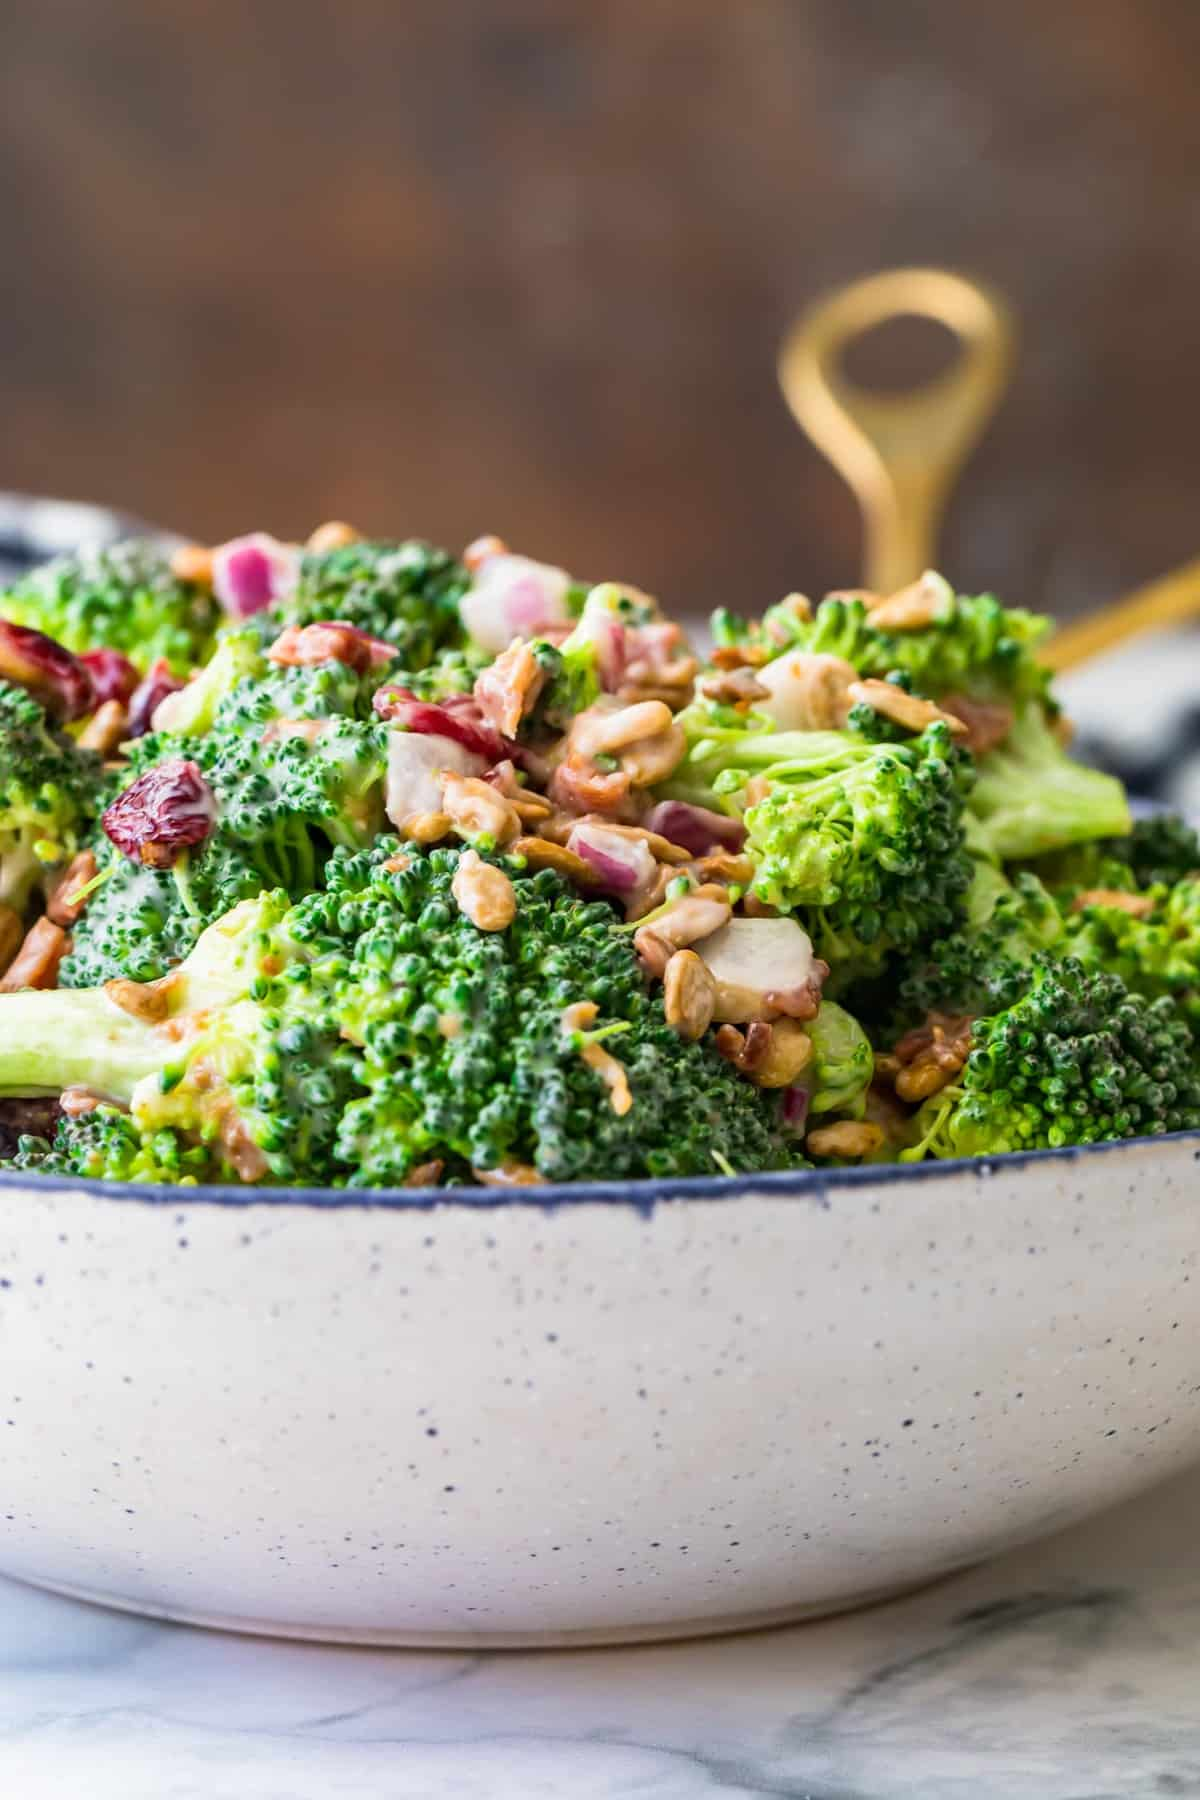 Broccoli salad ready to serve in a large bowl